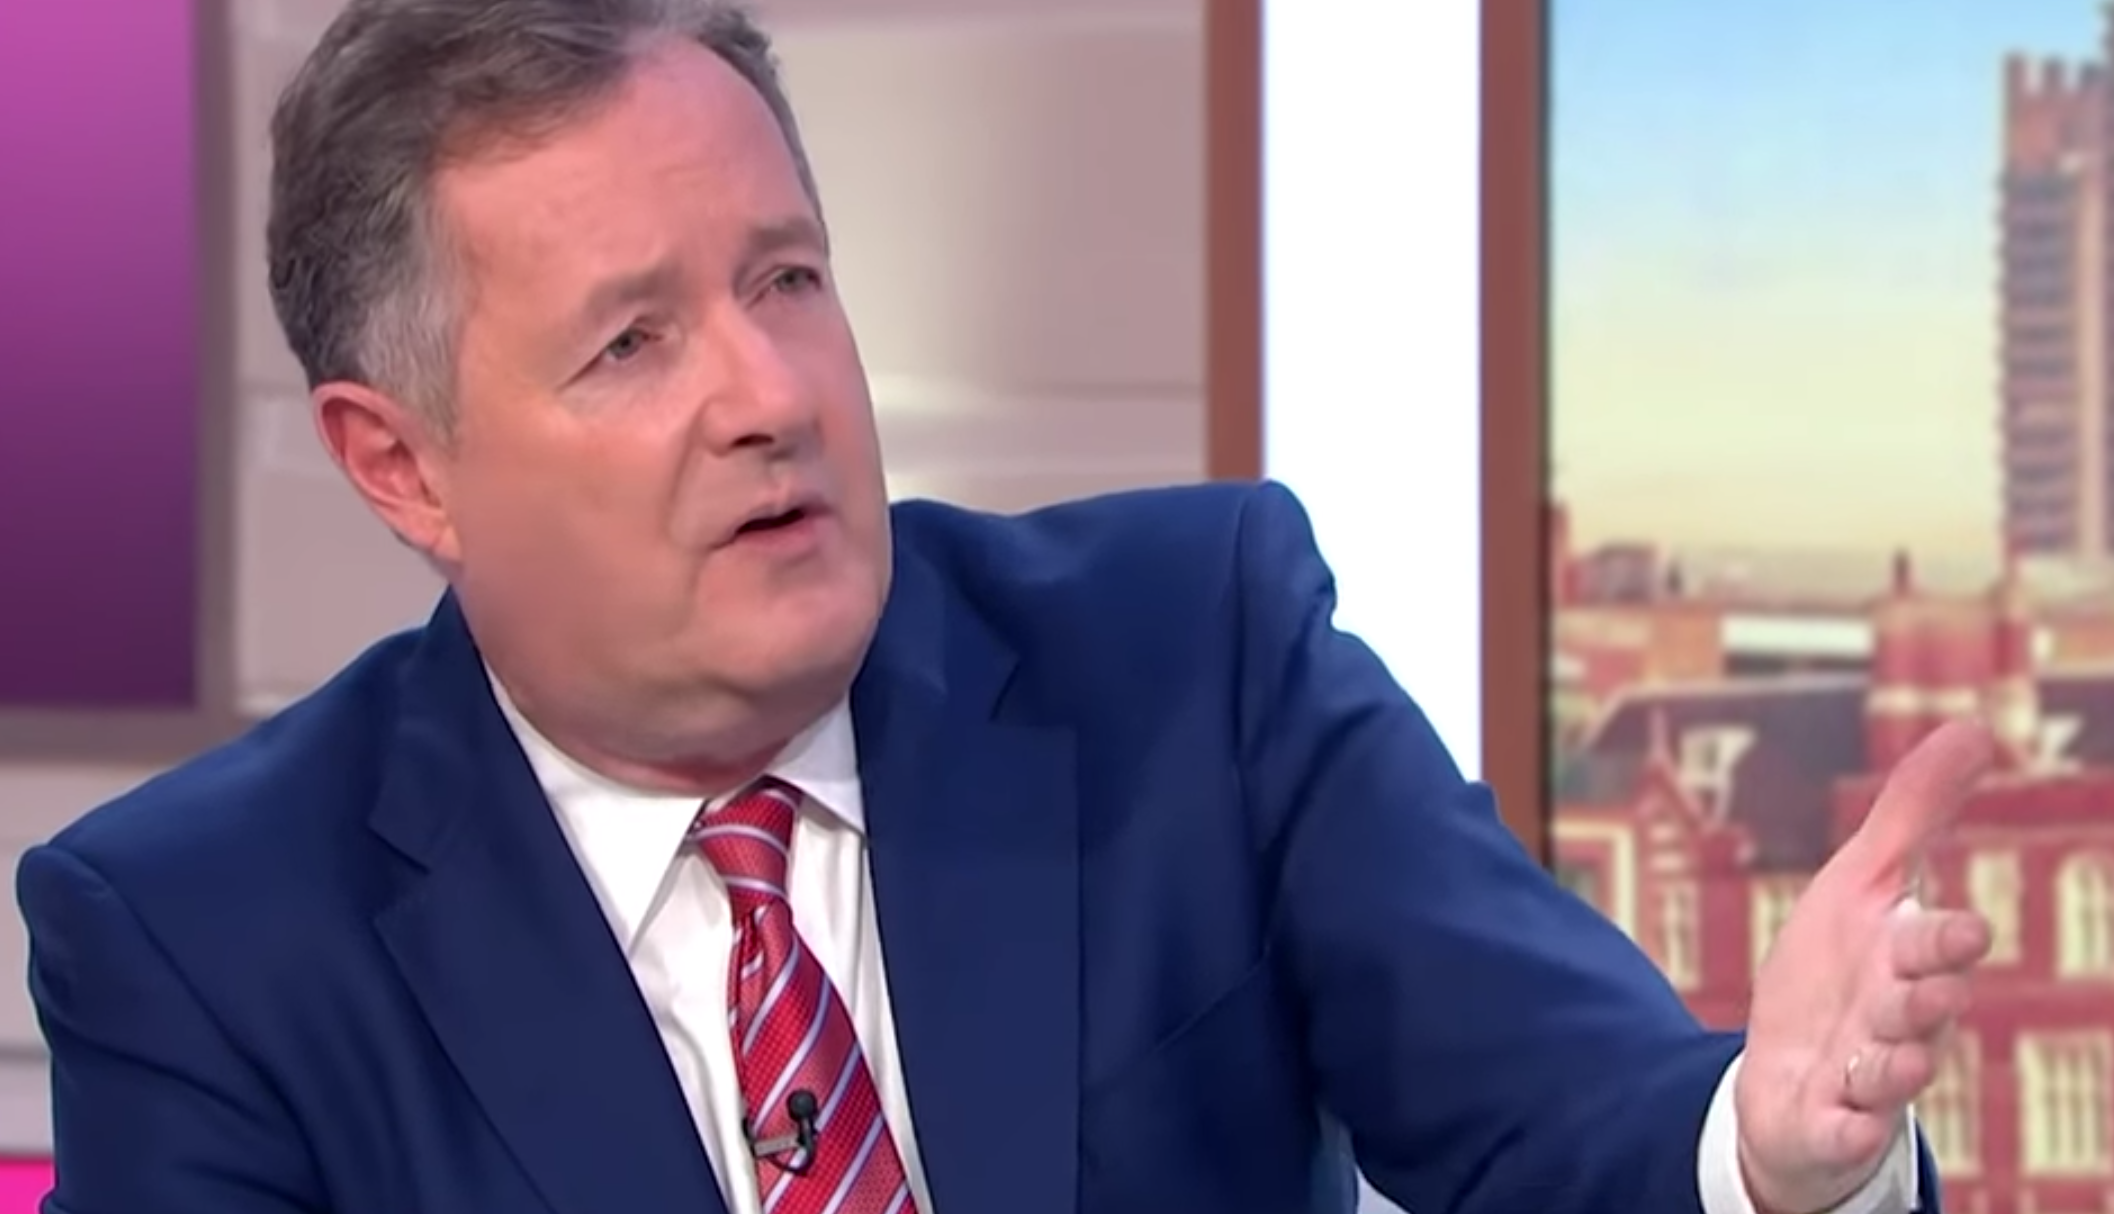 Piers Morgan takes coronavirus precautions and sets up home studio for Good Morning Britain